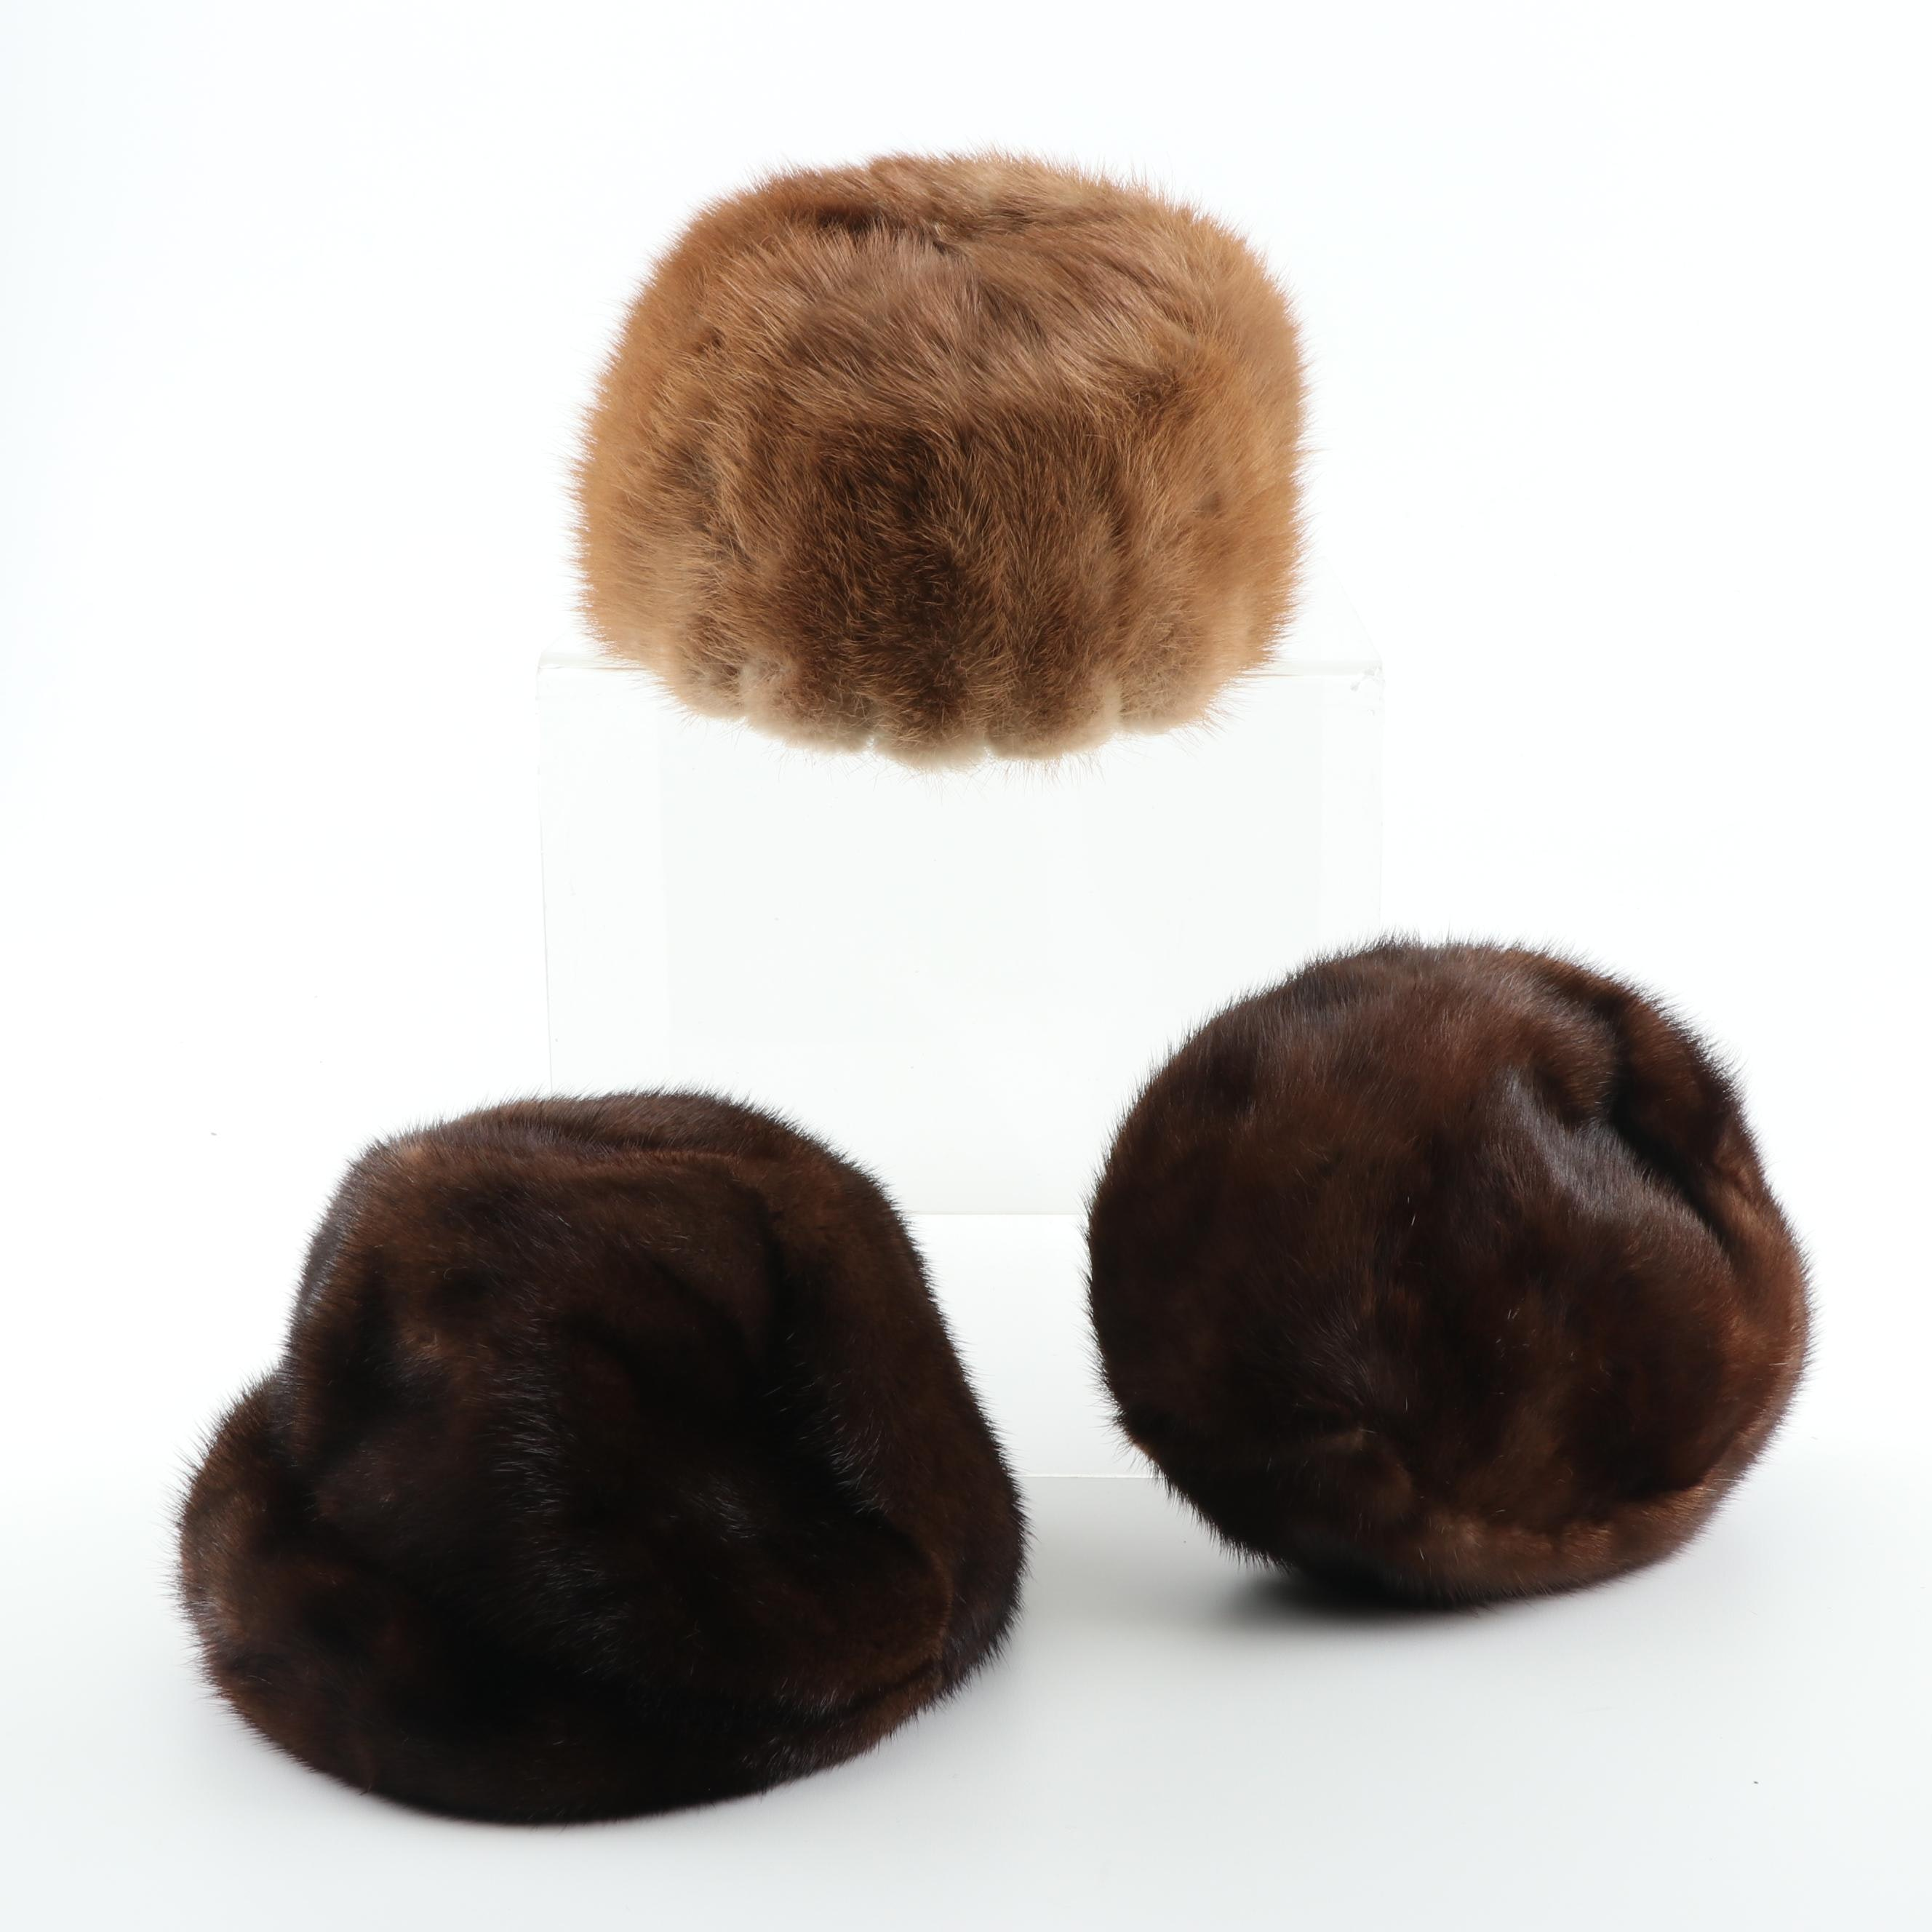 Women's Vintage Mink Fur Hats including Dana Marté